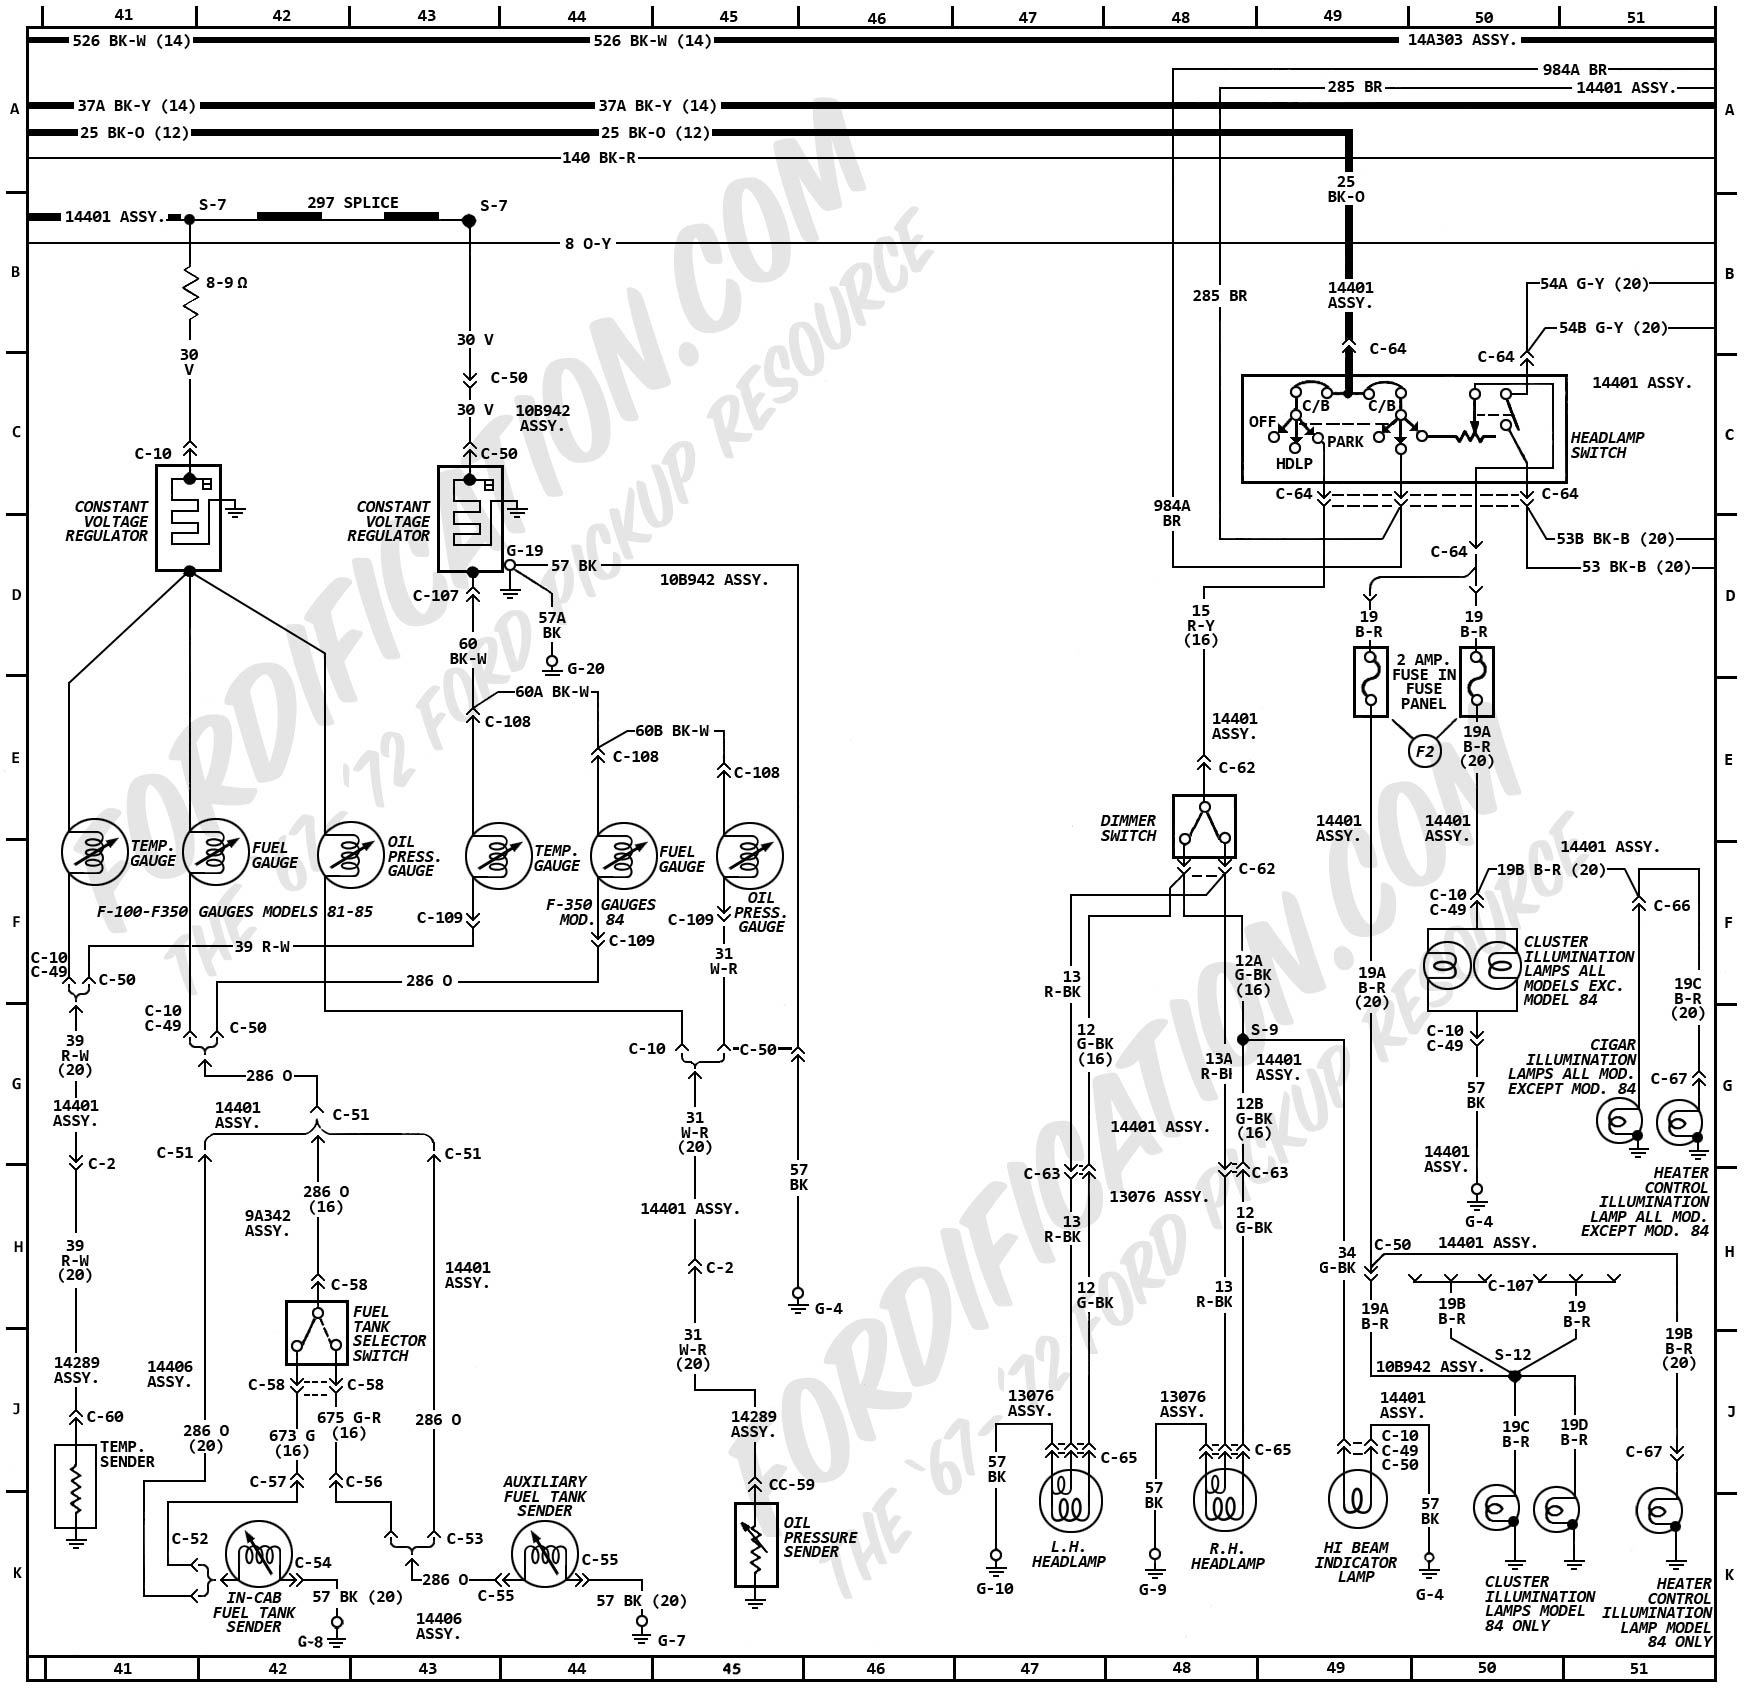 1972MasterWiring_05 Jacobs Ignition Wiring Diagram Ford on coil diagram, auto ignition diagram, electronic ignition diagram, toyota ignition tumbler diagram, jacobs pro street ignition computer, stihl chainsaw ignition kill switch diagram, ignition system diagram,